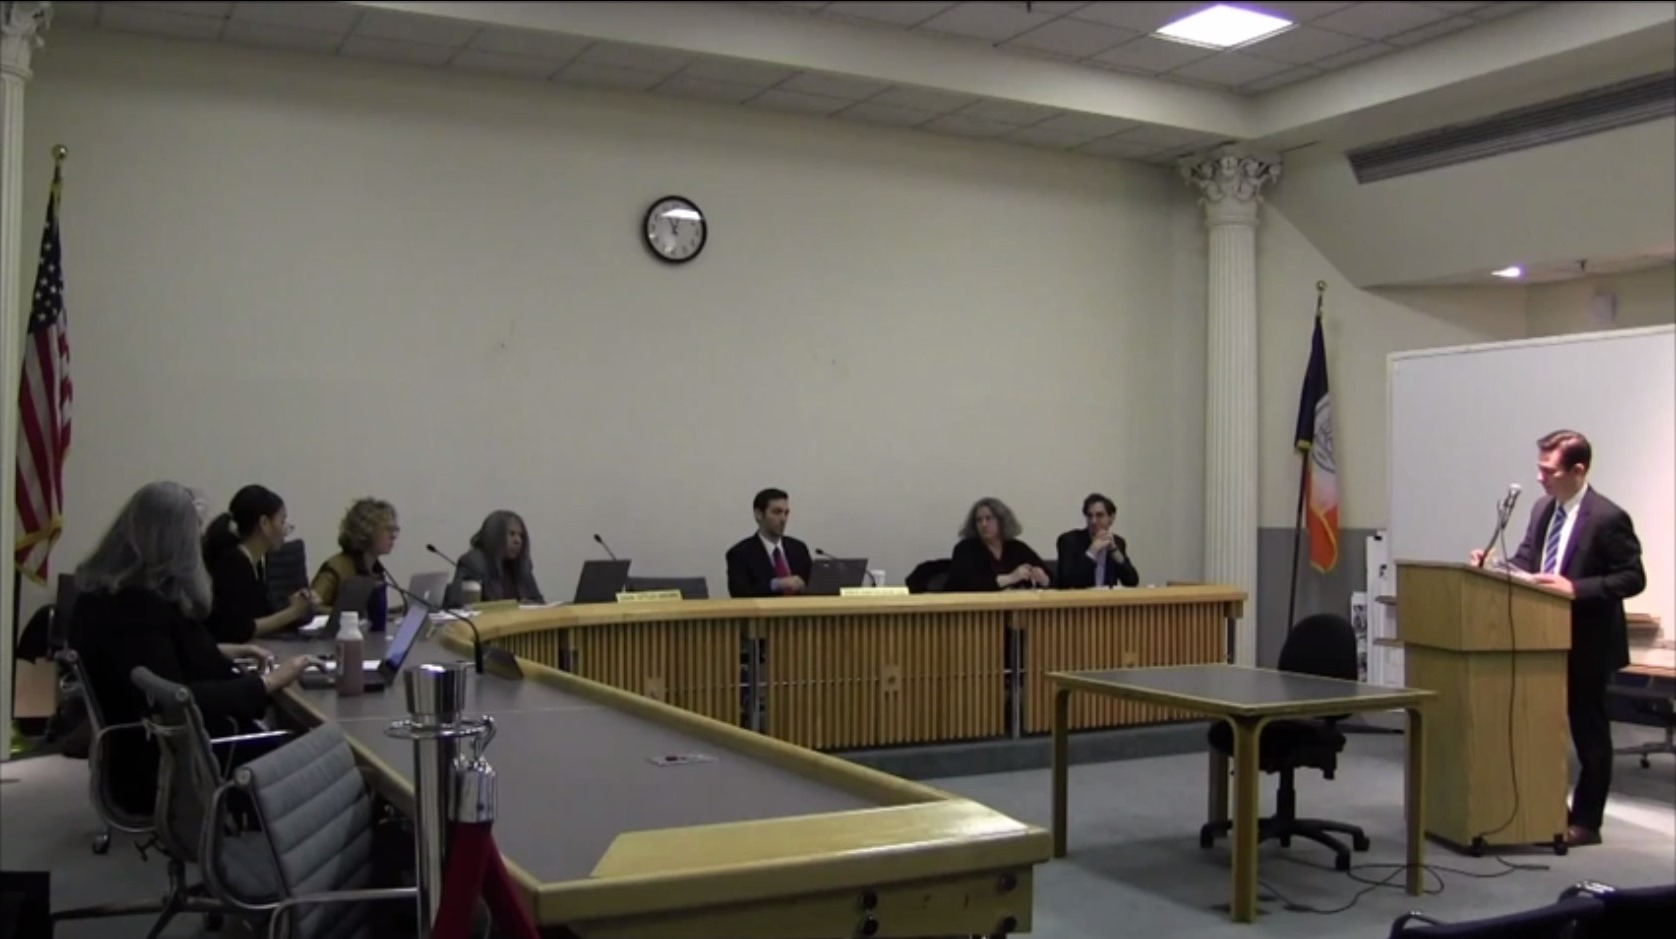 Richard Lobel testifies before the Board of Standards and Appeals.  Image credit:  BSA